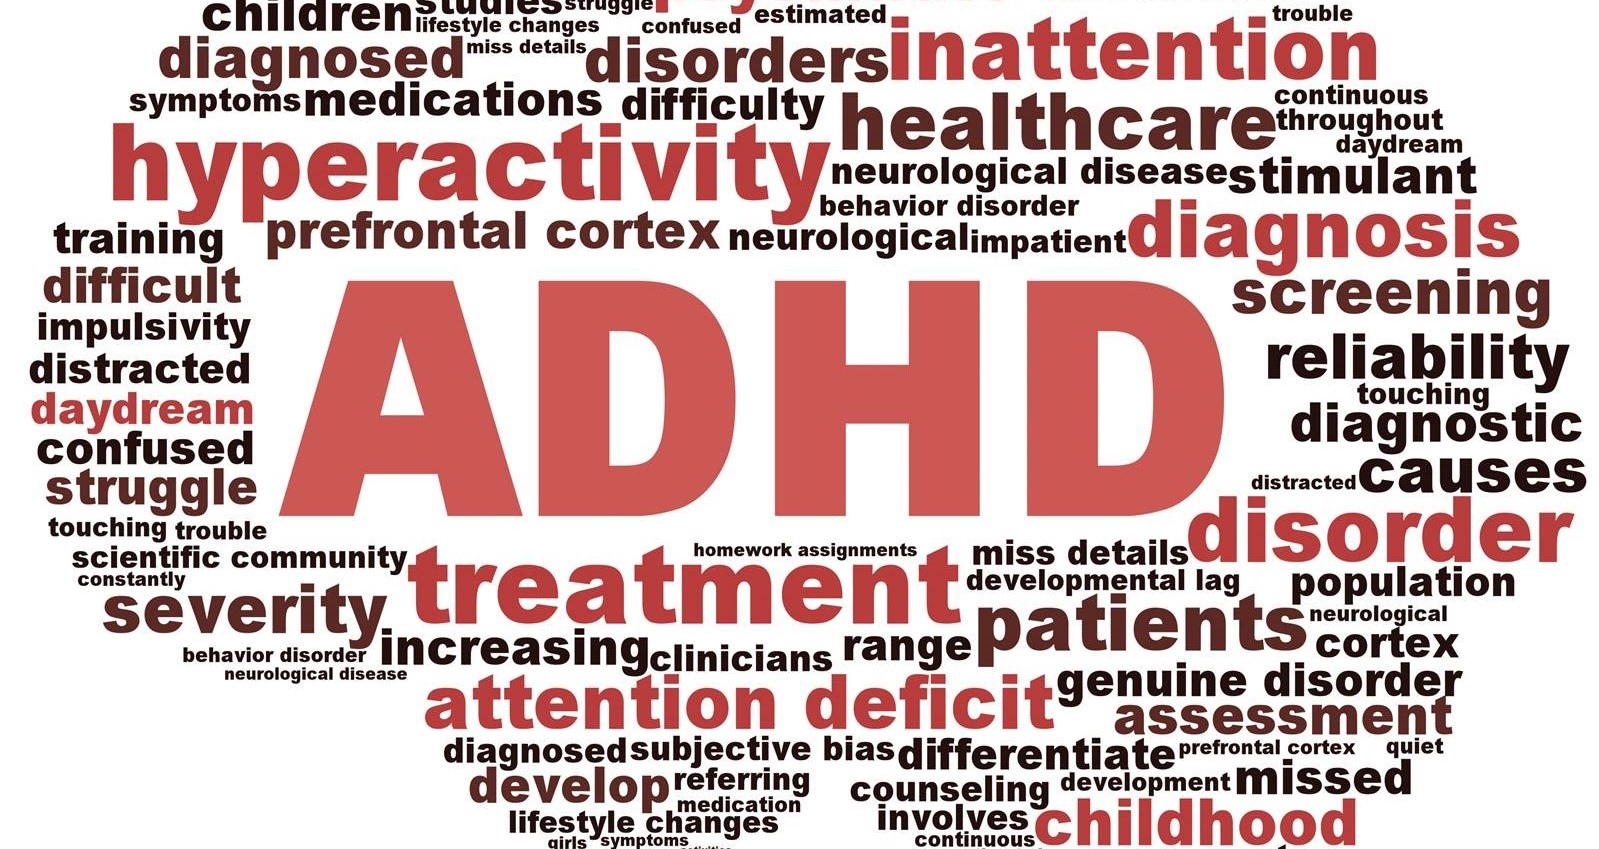 How Nootropics Can Help Those Suffering From ADHD/ADD